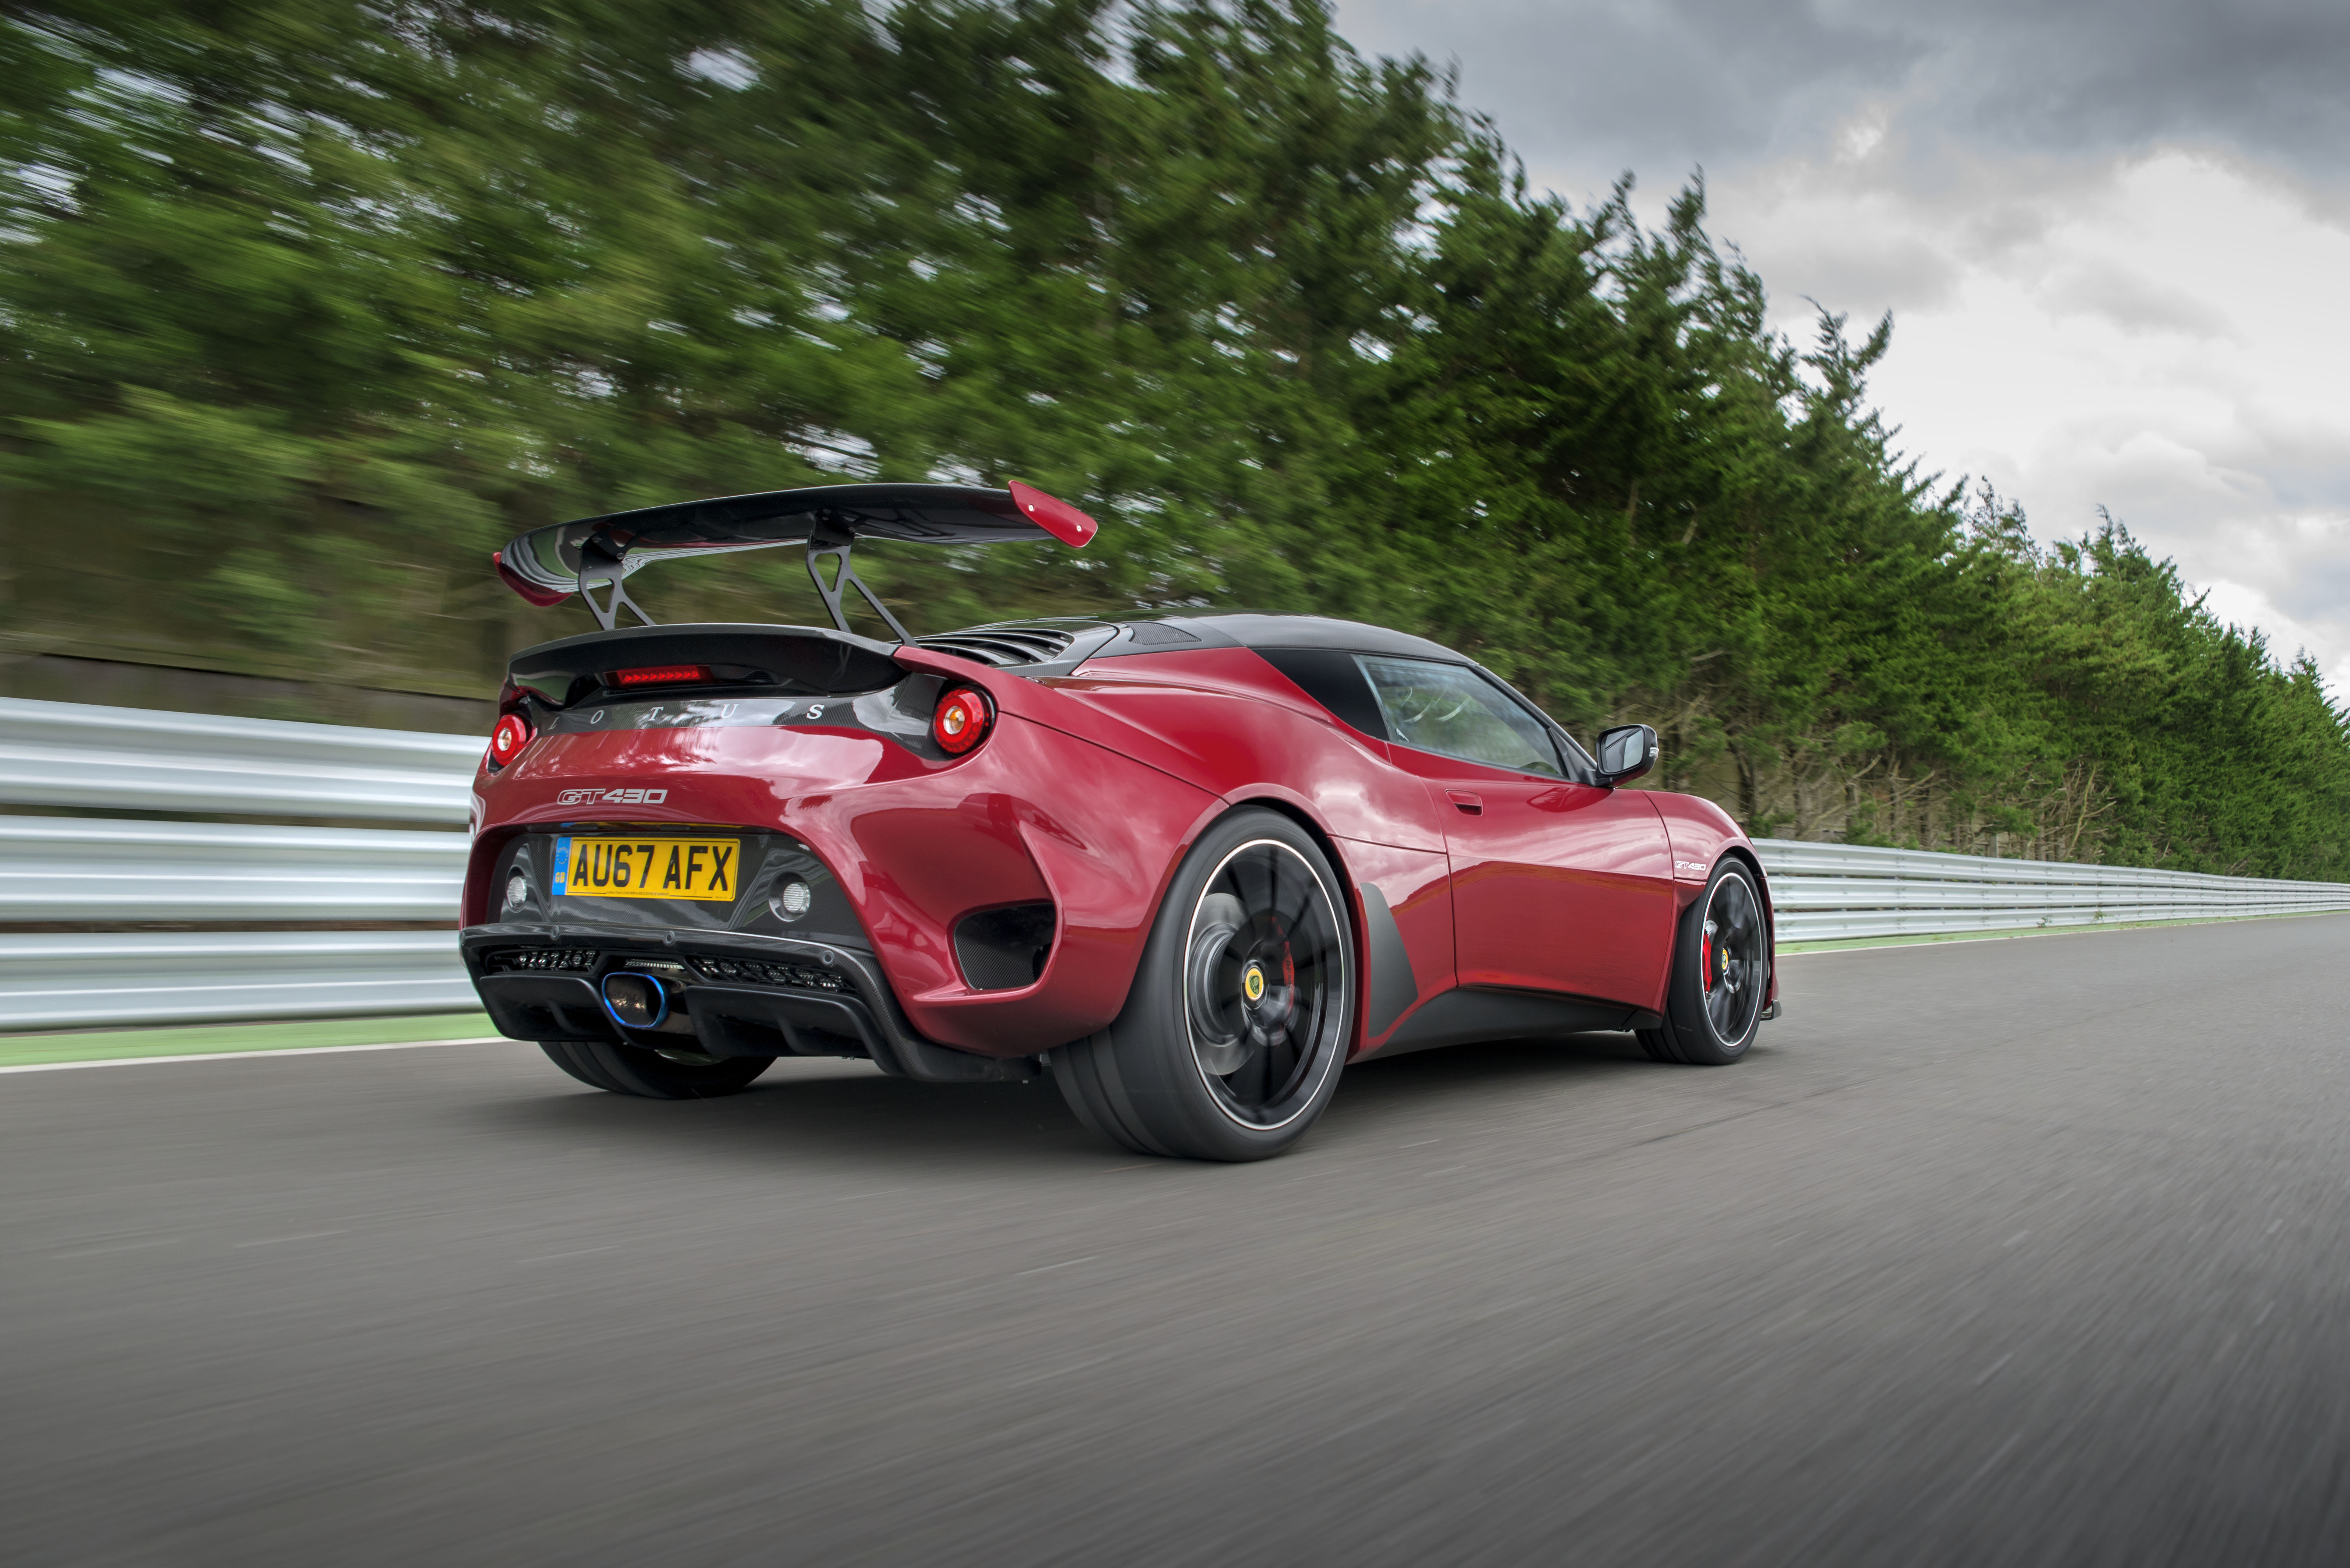 2018 lotus evora gt430.  evora chase the throttle without trepidation the even spread of supercharged  torque helps here too thereu0027s never too much power so you have to hold for 2018 lotus evora gt430